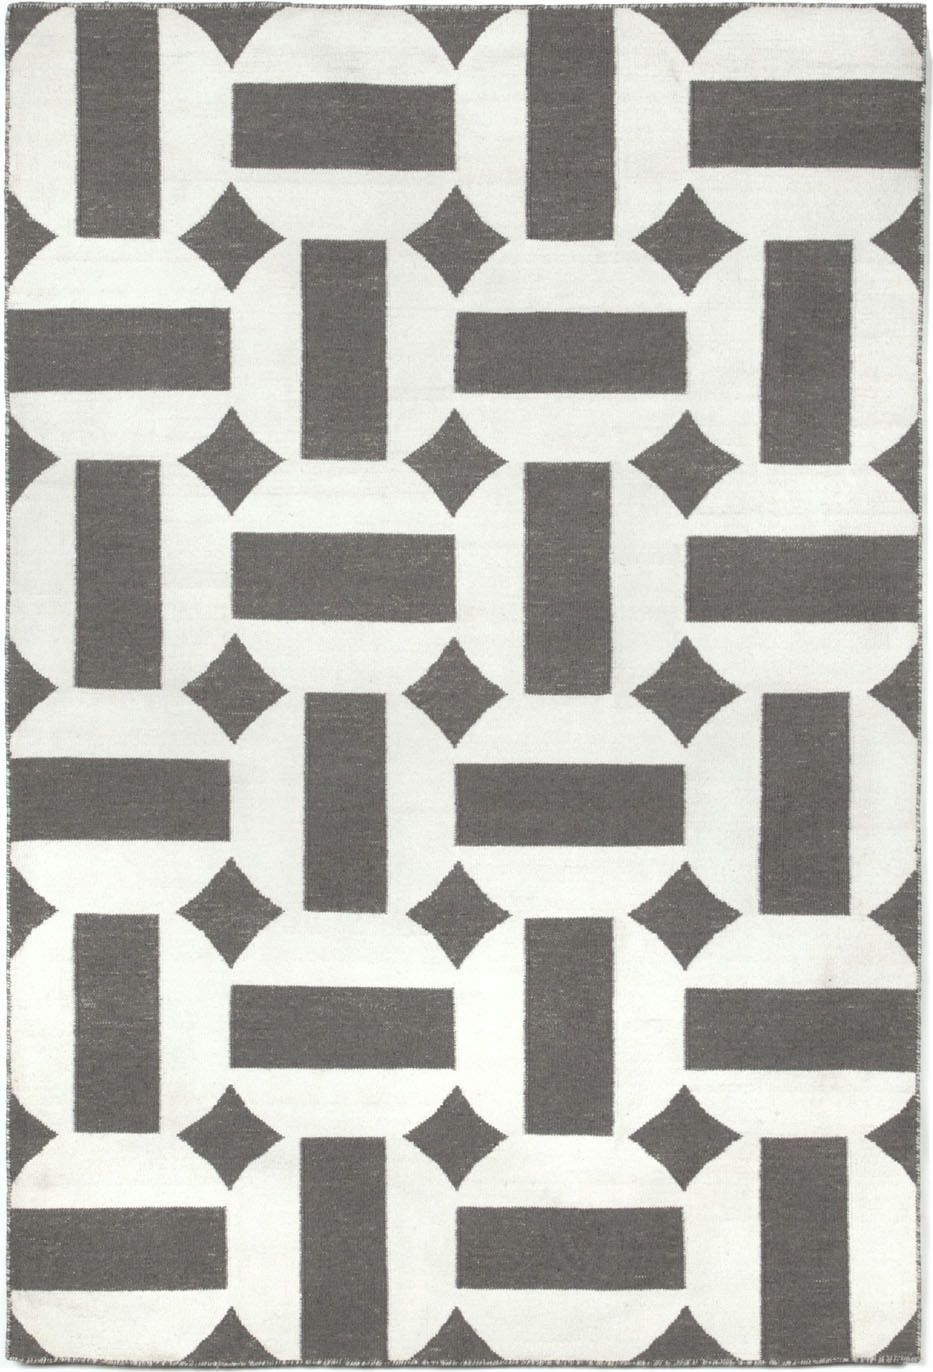 Hand woven assisi circles gray indoor outdoor area rug 5 ft x 7 ft 6in